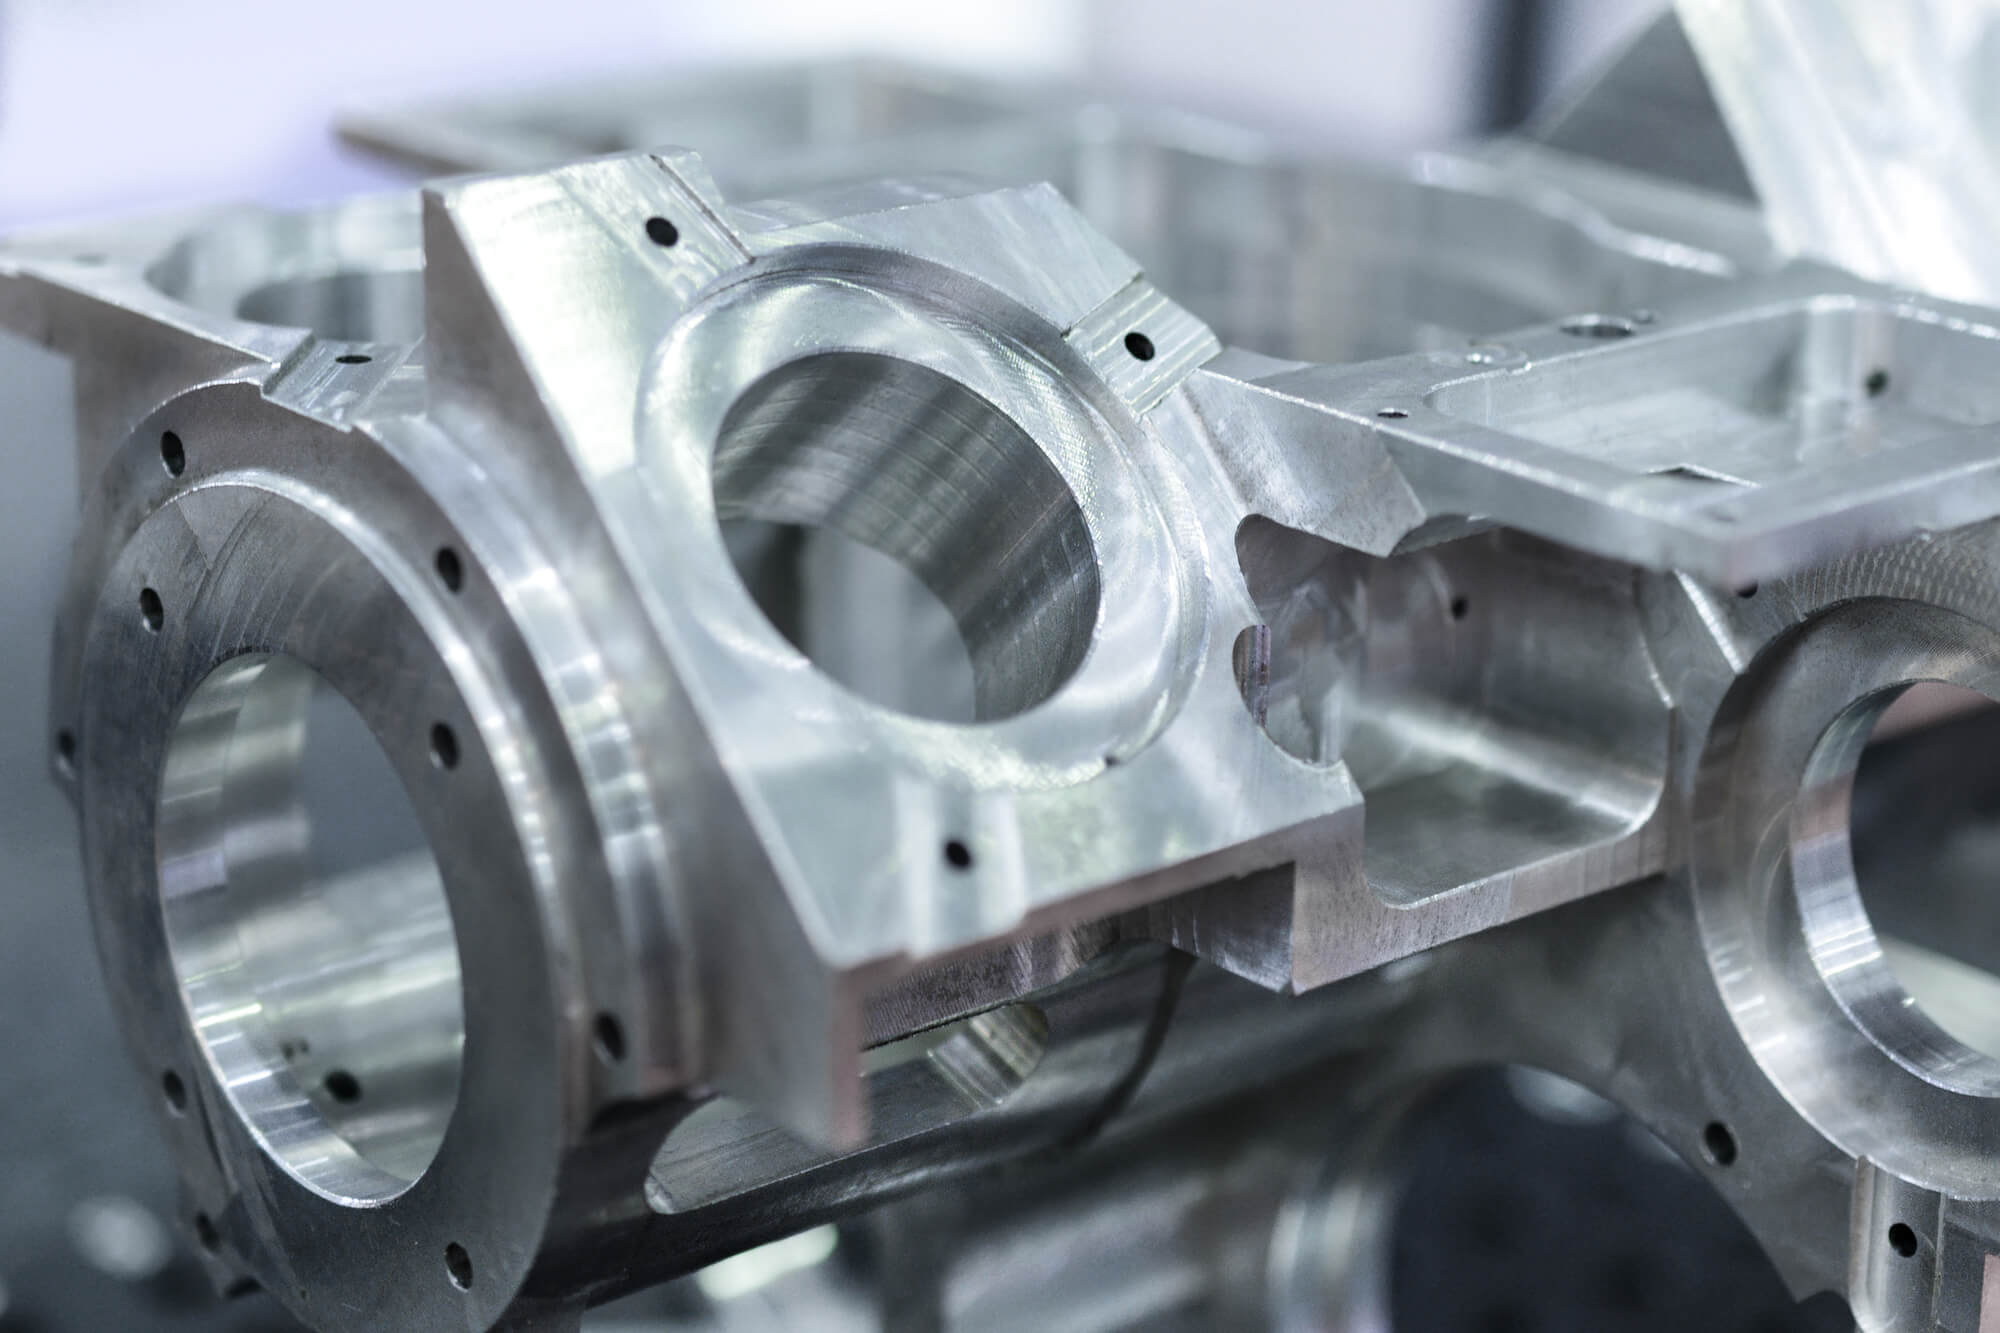 where can I get machined castings?